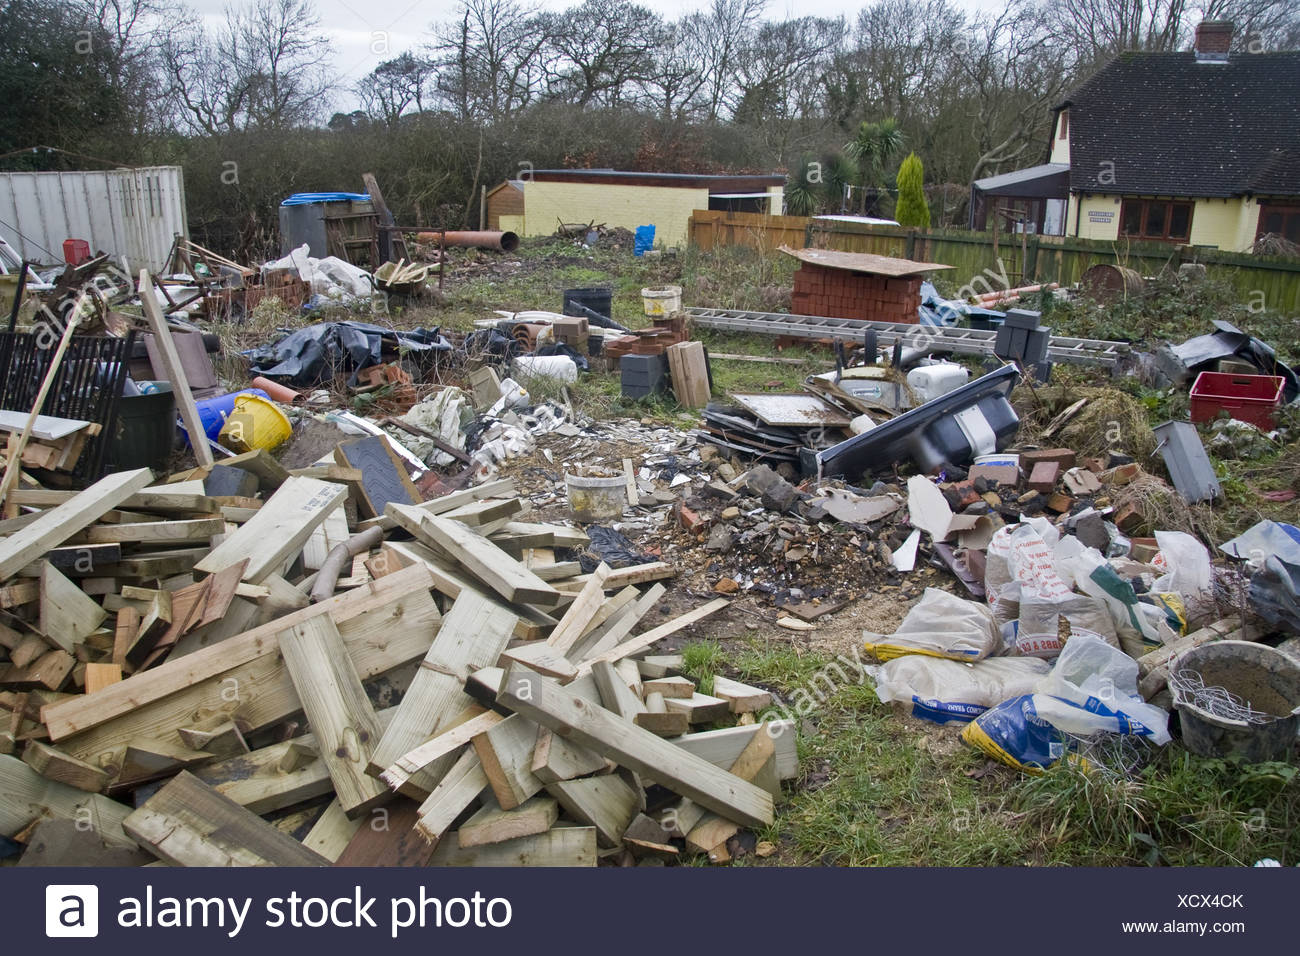 Delightful Chaos Untidy Disorganised Mess Lazy Garden Backyard Junk Rubbish Builders  Milford On Sea Hampshire England UK